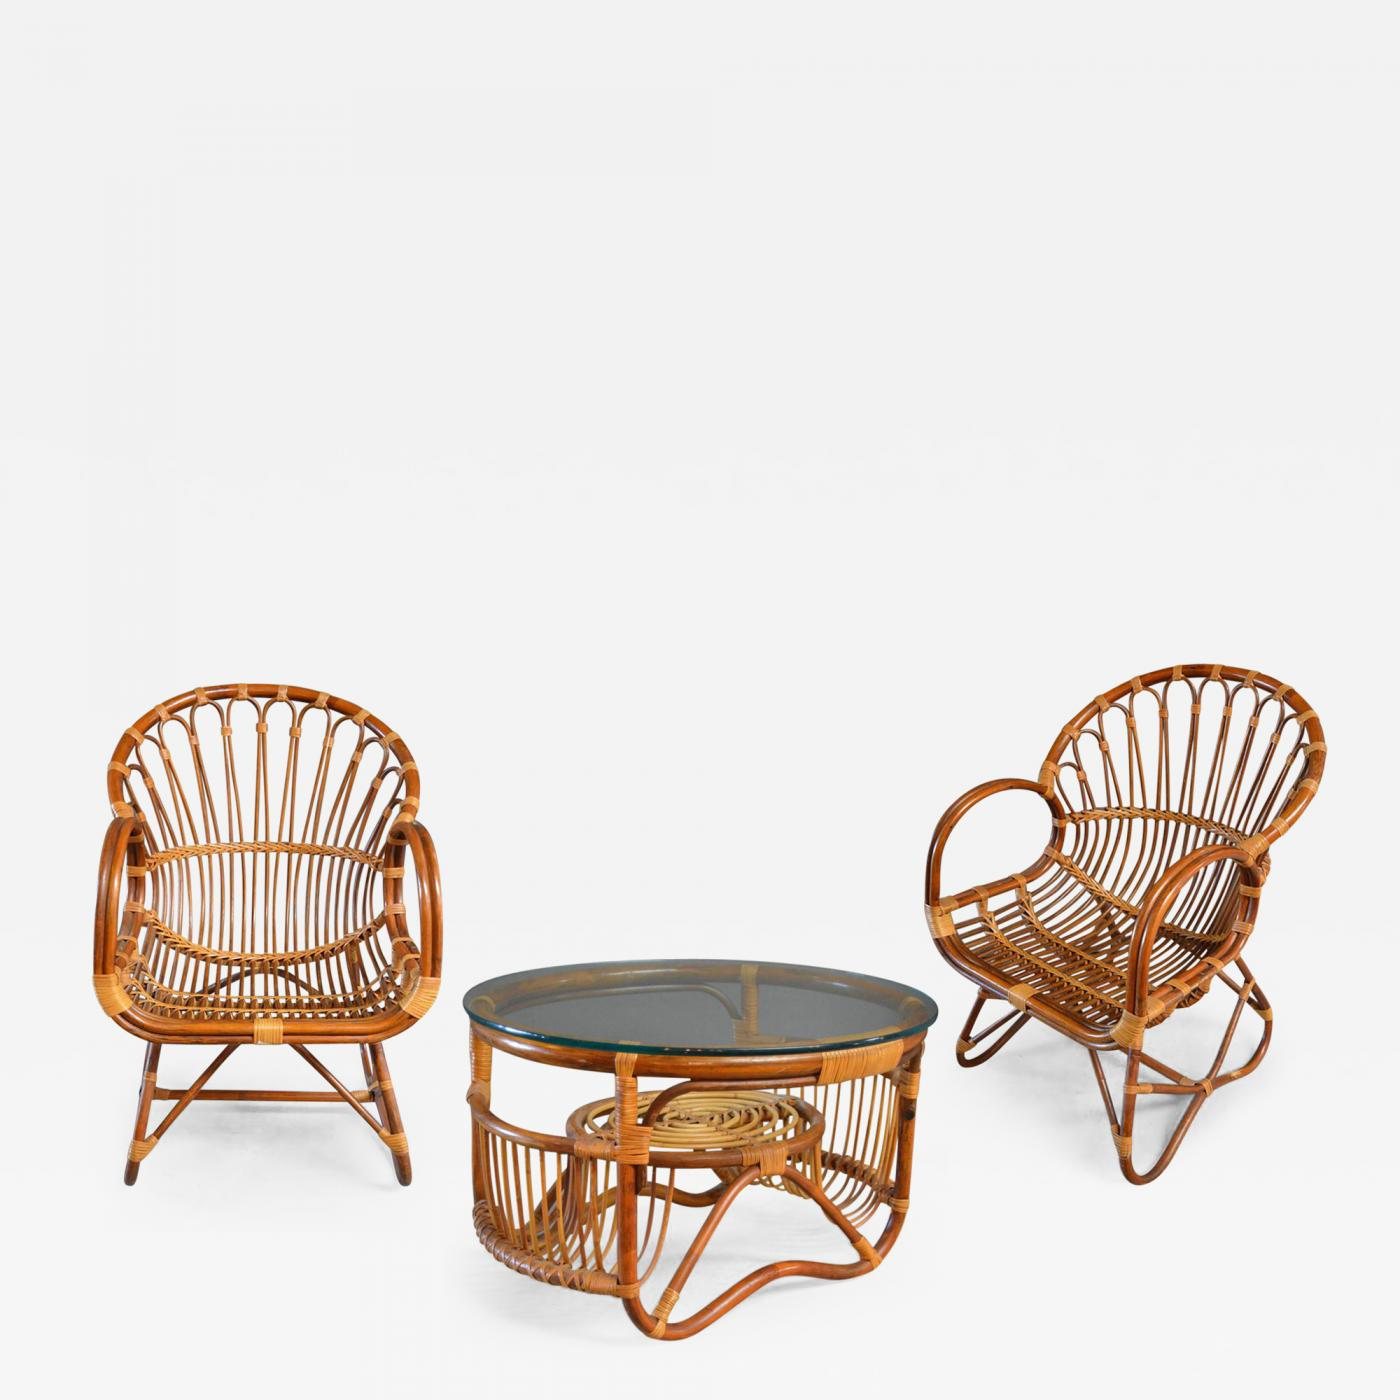 Rattan Chairs Sculptural Bamboo And Rattan Chairs With Matching Side Table